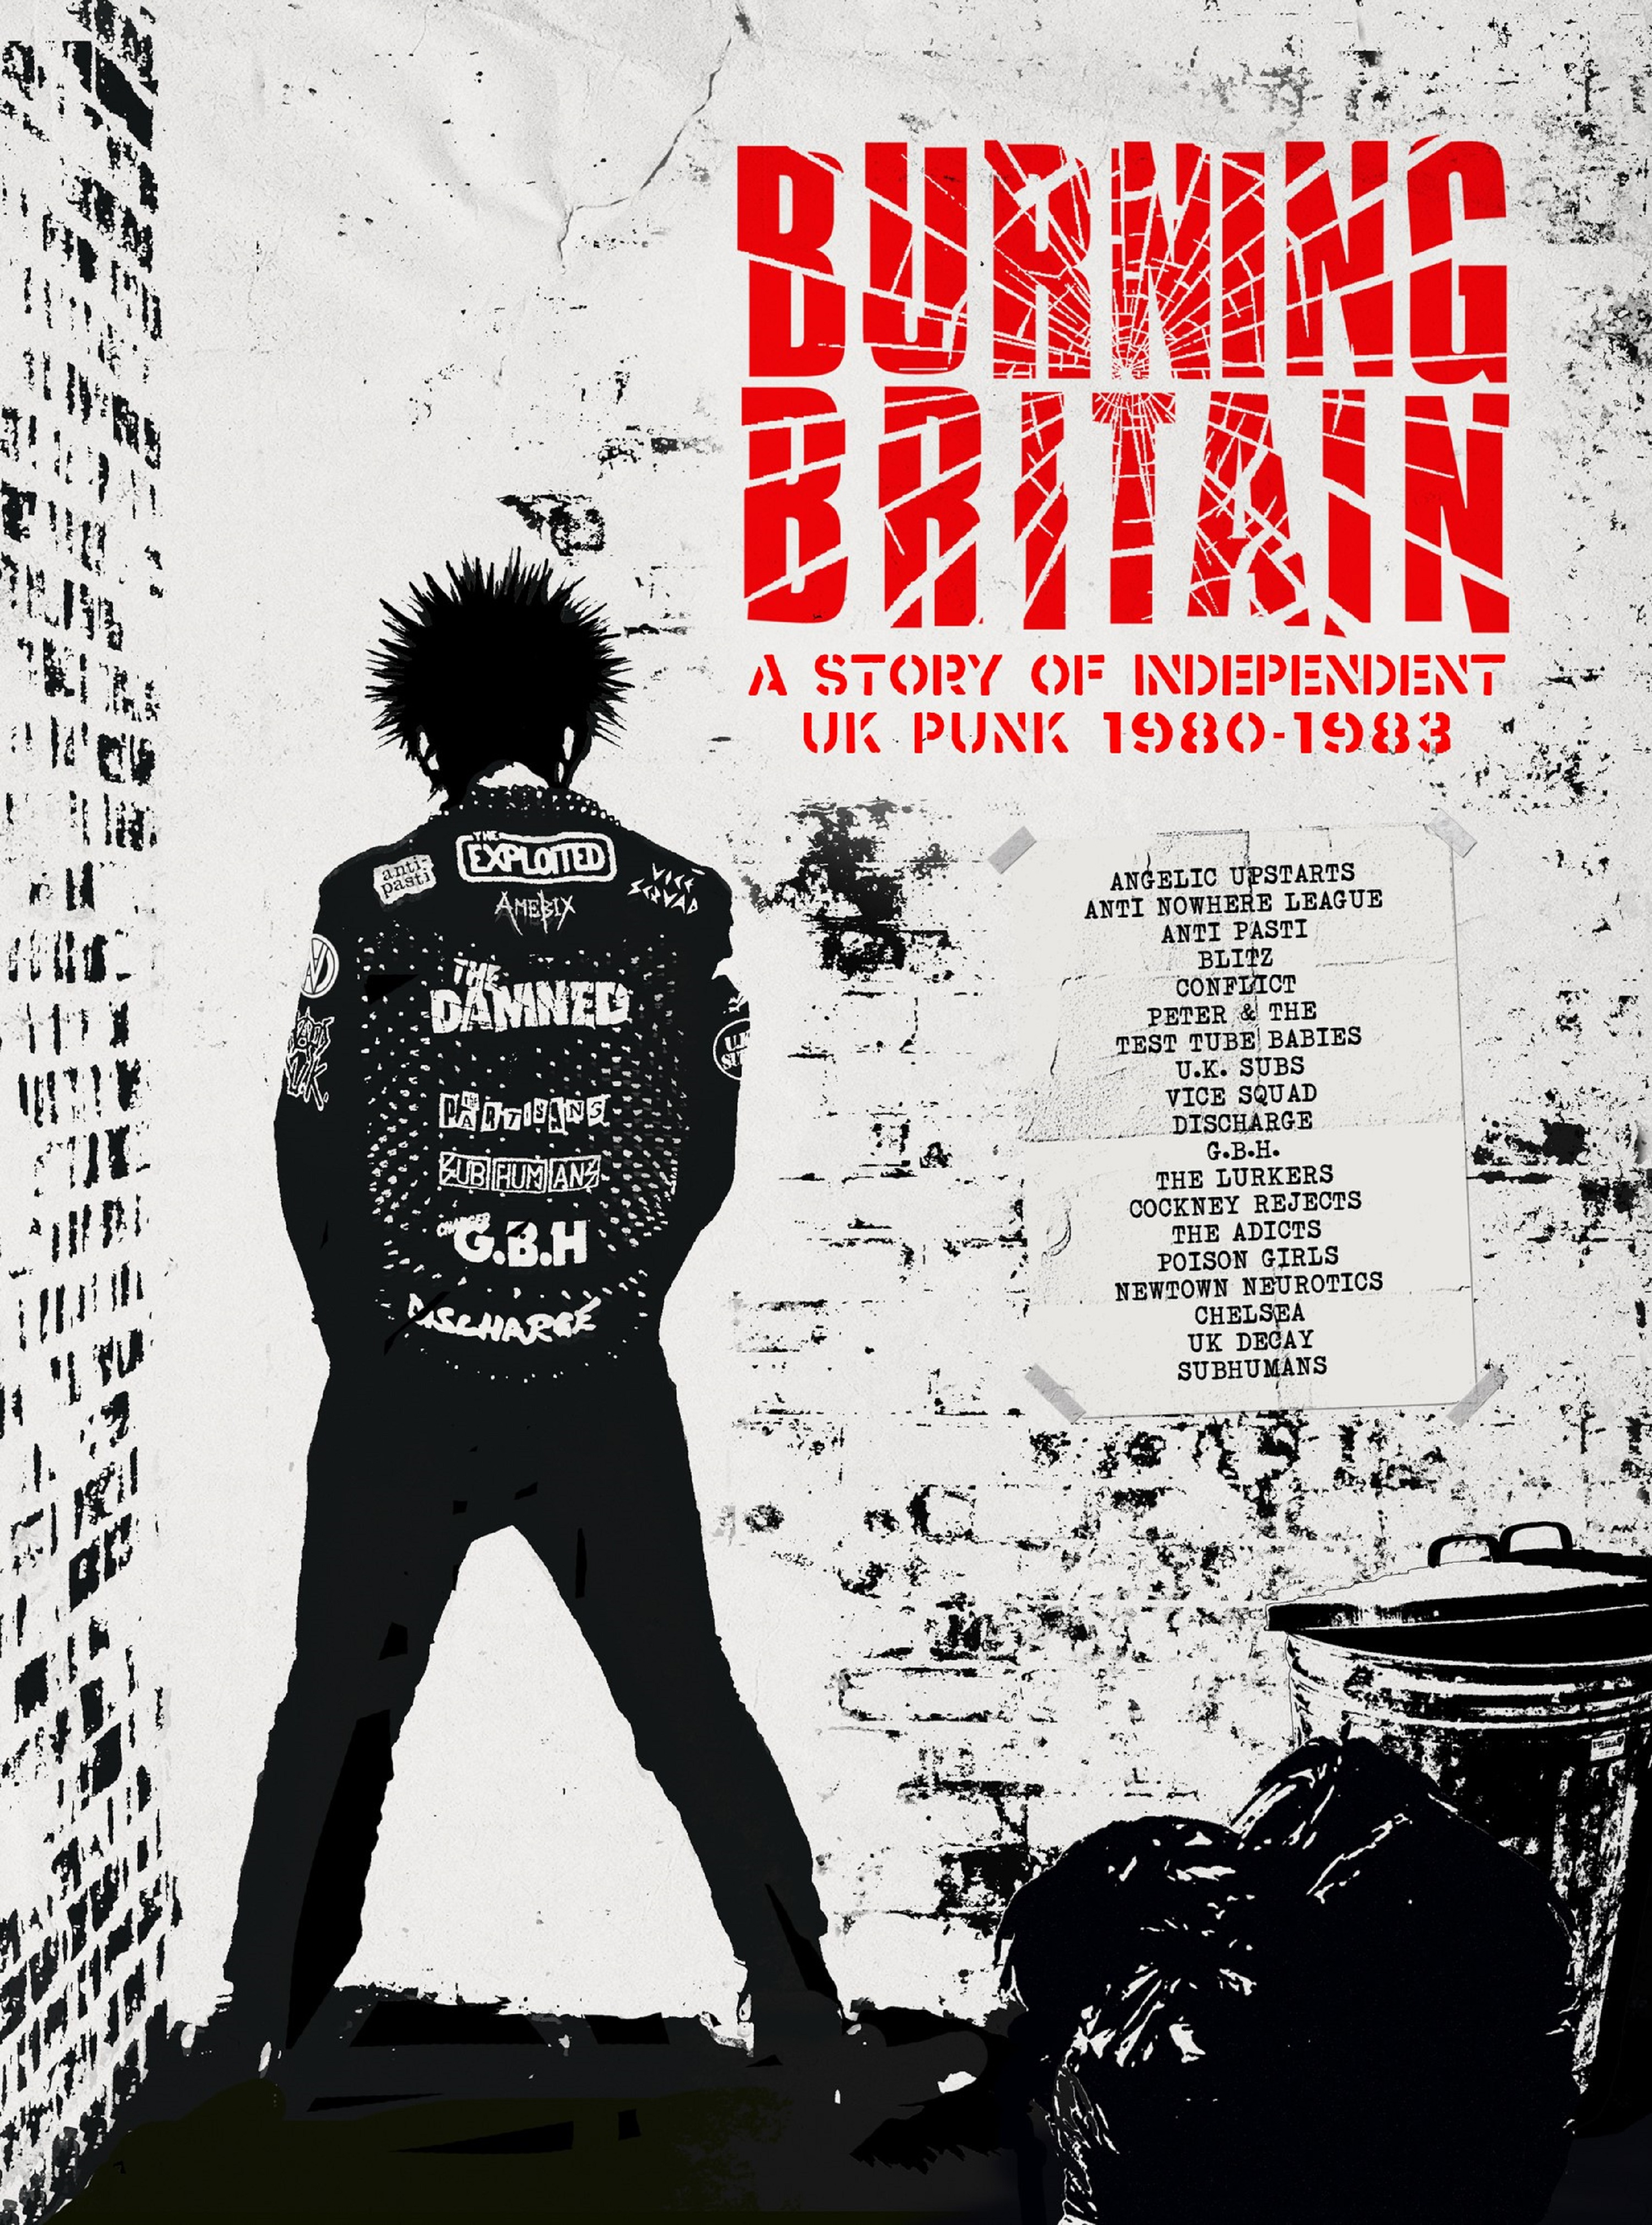 News – Burning Britain: A Story Of Independent UK Punk 1980 – 1983